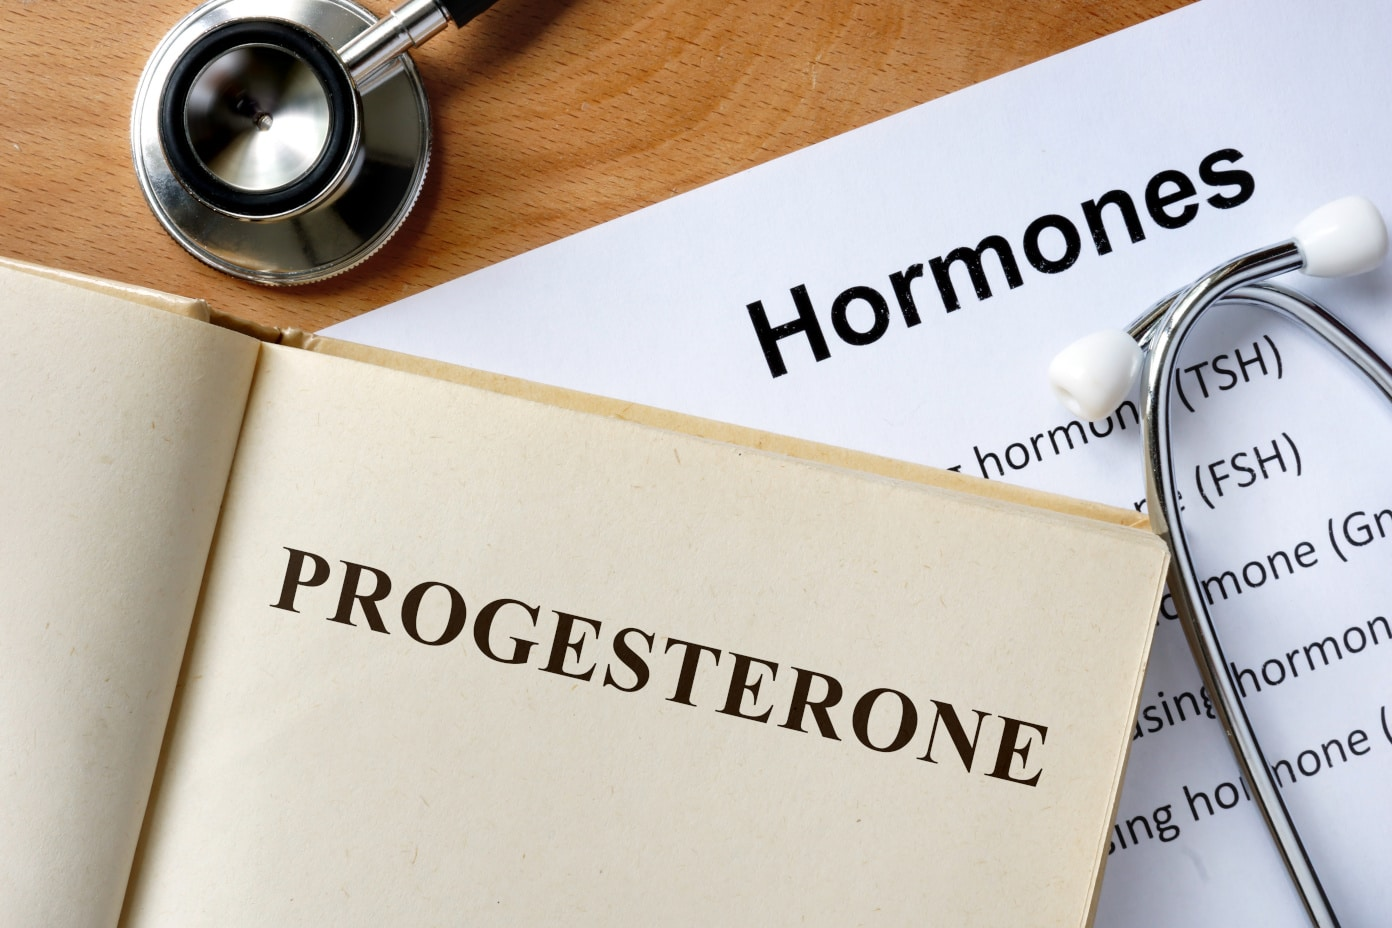 5 Myths and Truths About Progesterone Supplementation